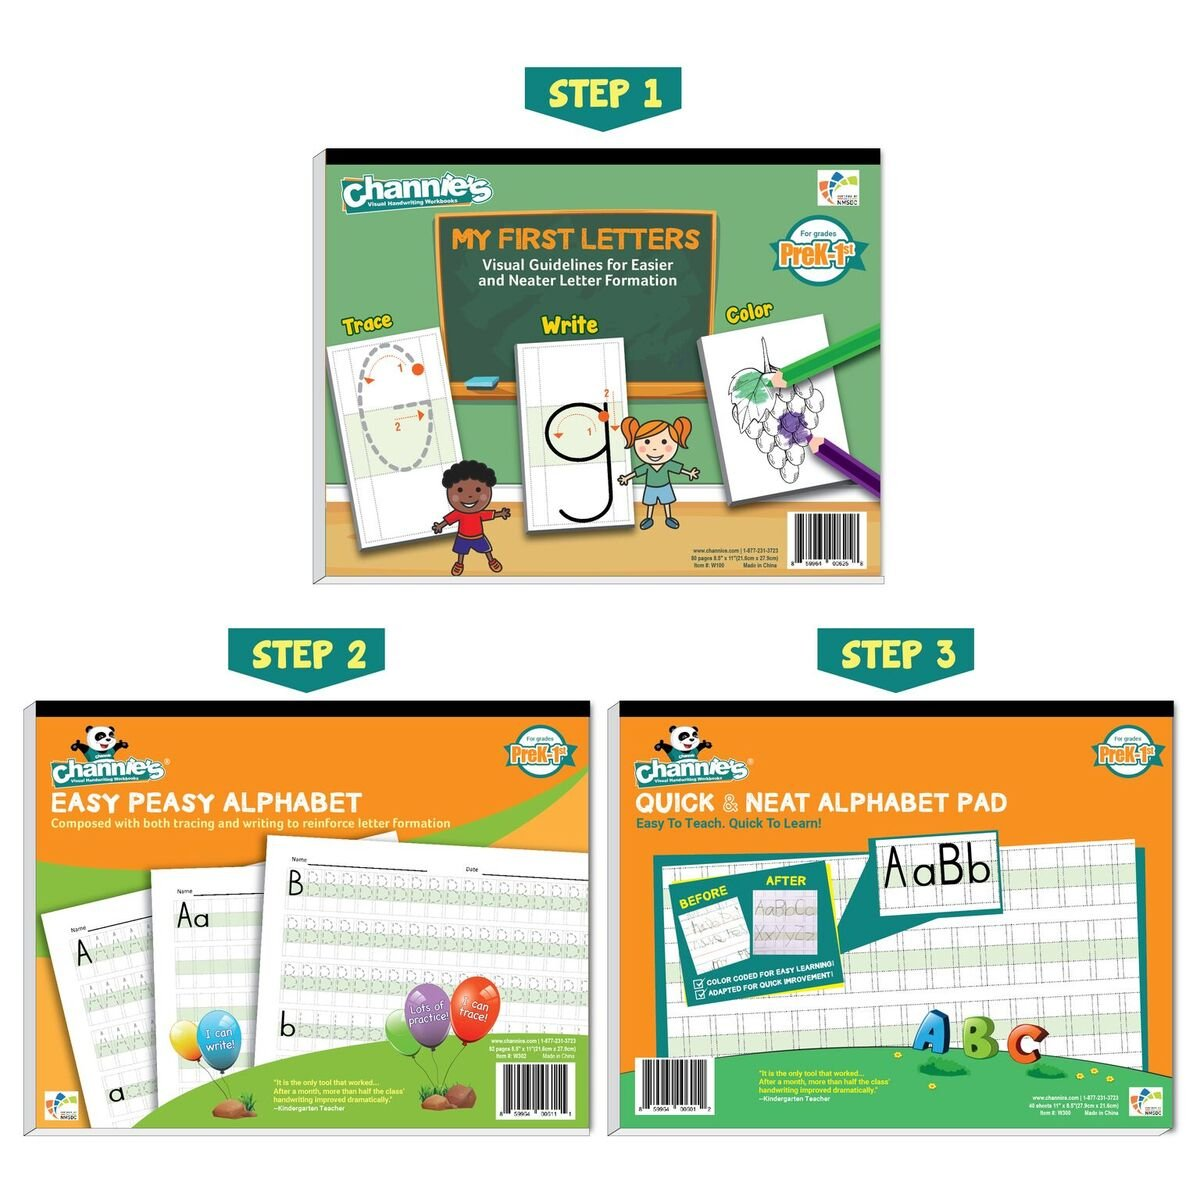 Channie's Beginner's Alphabet & Handwriting workbooks, 3 workbooks, lots practices with visual format. Easier way to learn Alphabet by Channie's